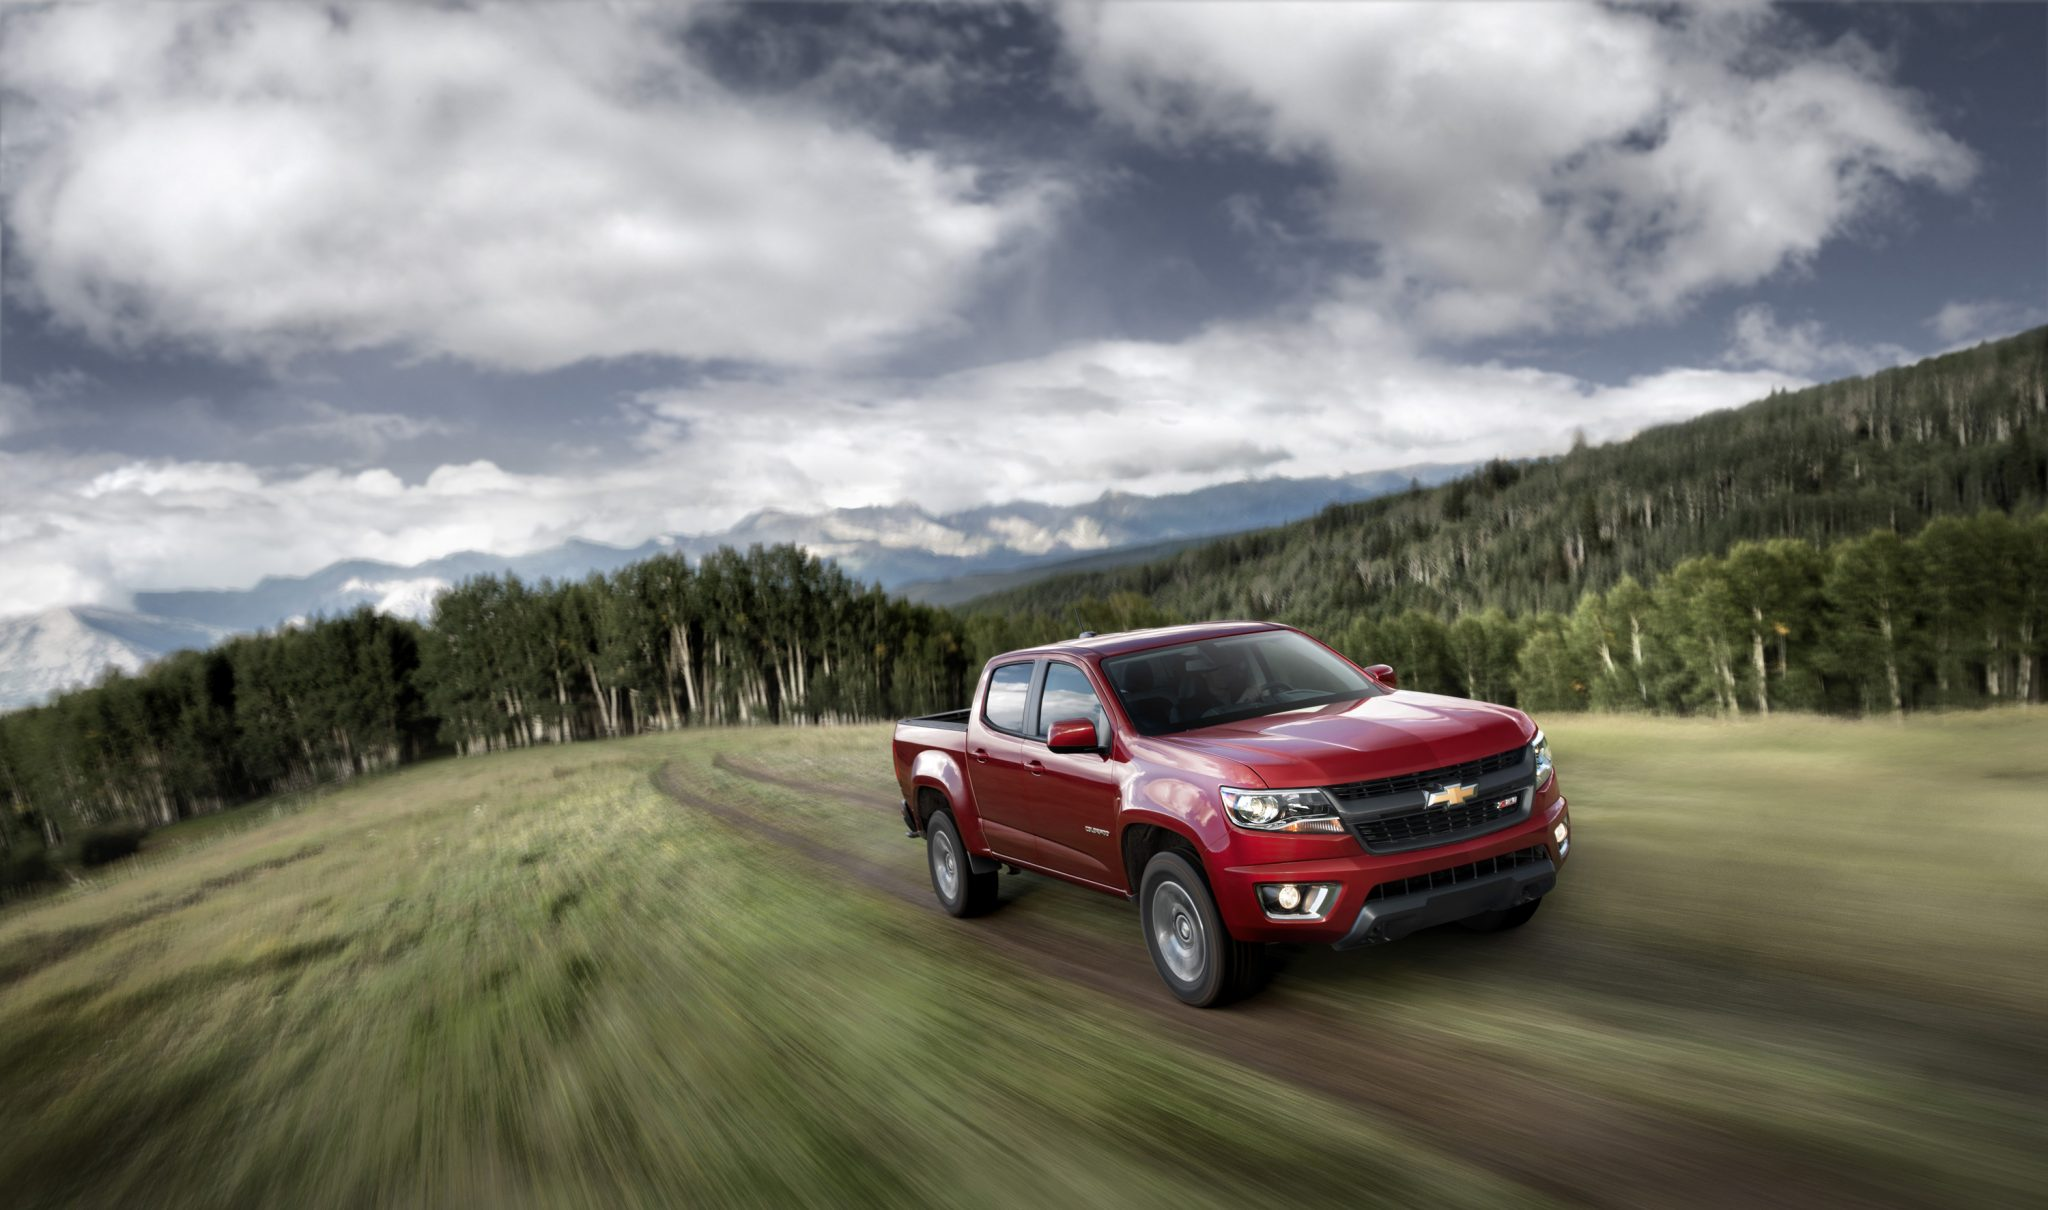 2015 Chevy Colorado Appearance Packages Coming Soon - The ...